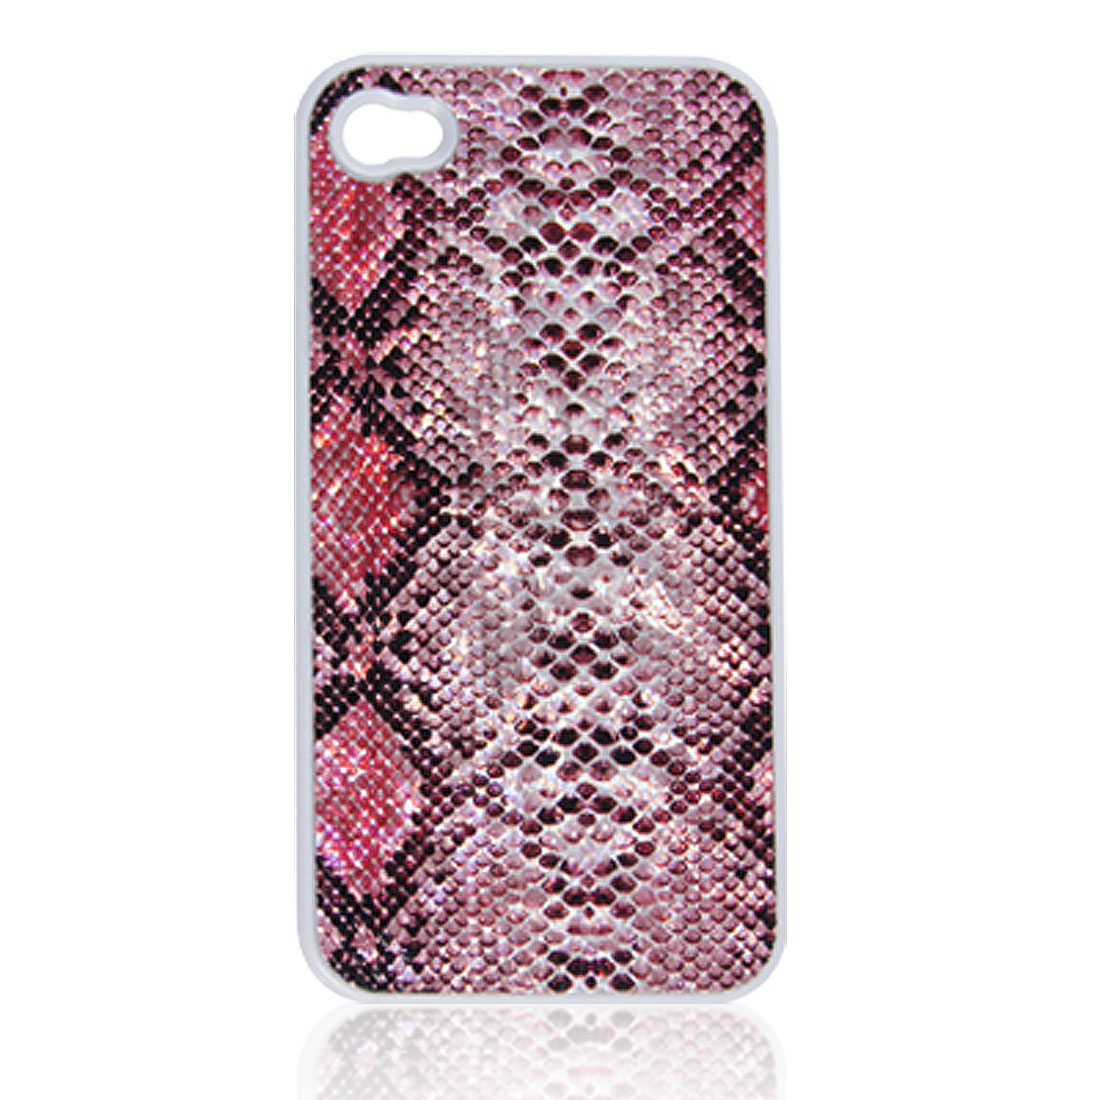 Pink Black Faux Leather Coated Back Case Cover Shell for iPhone 4 4G 4S